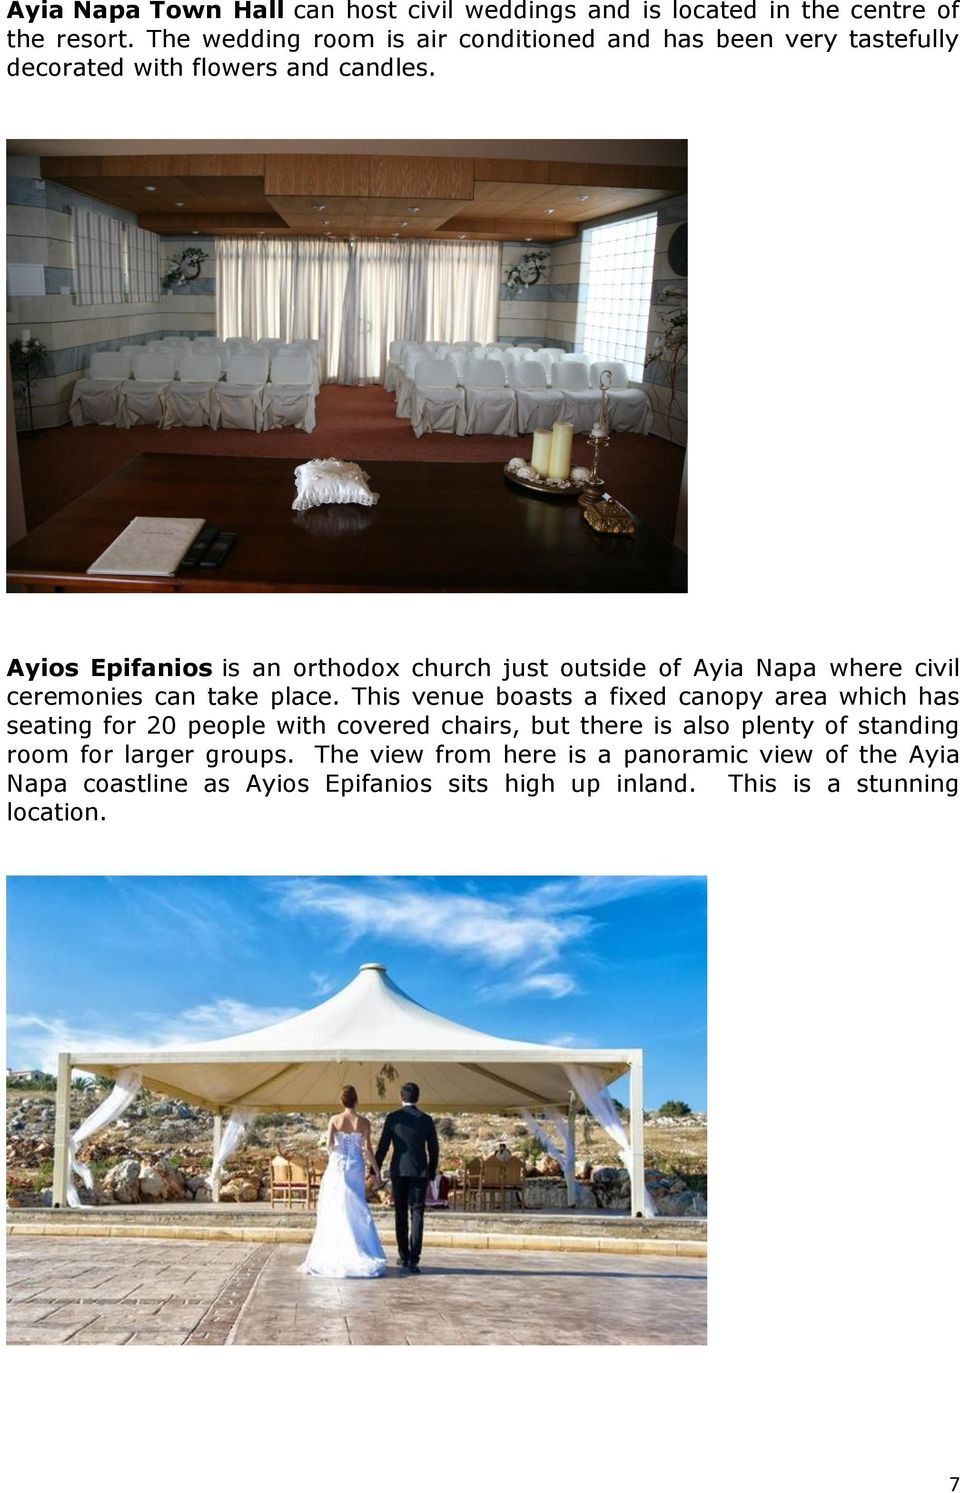 Ayios Epifanios is an orthodox church just outside of Ayia Napa where civil ceremonies can take place.